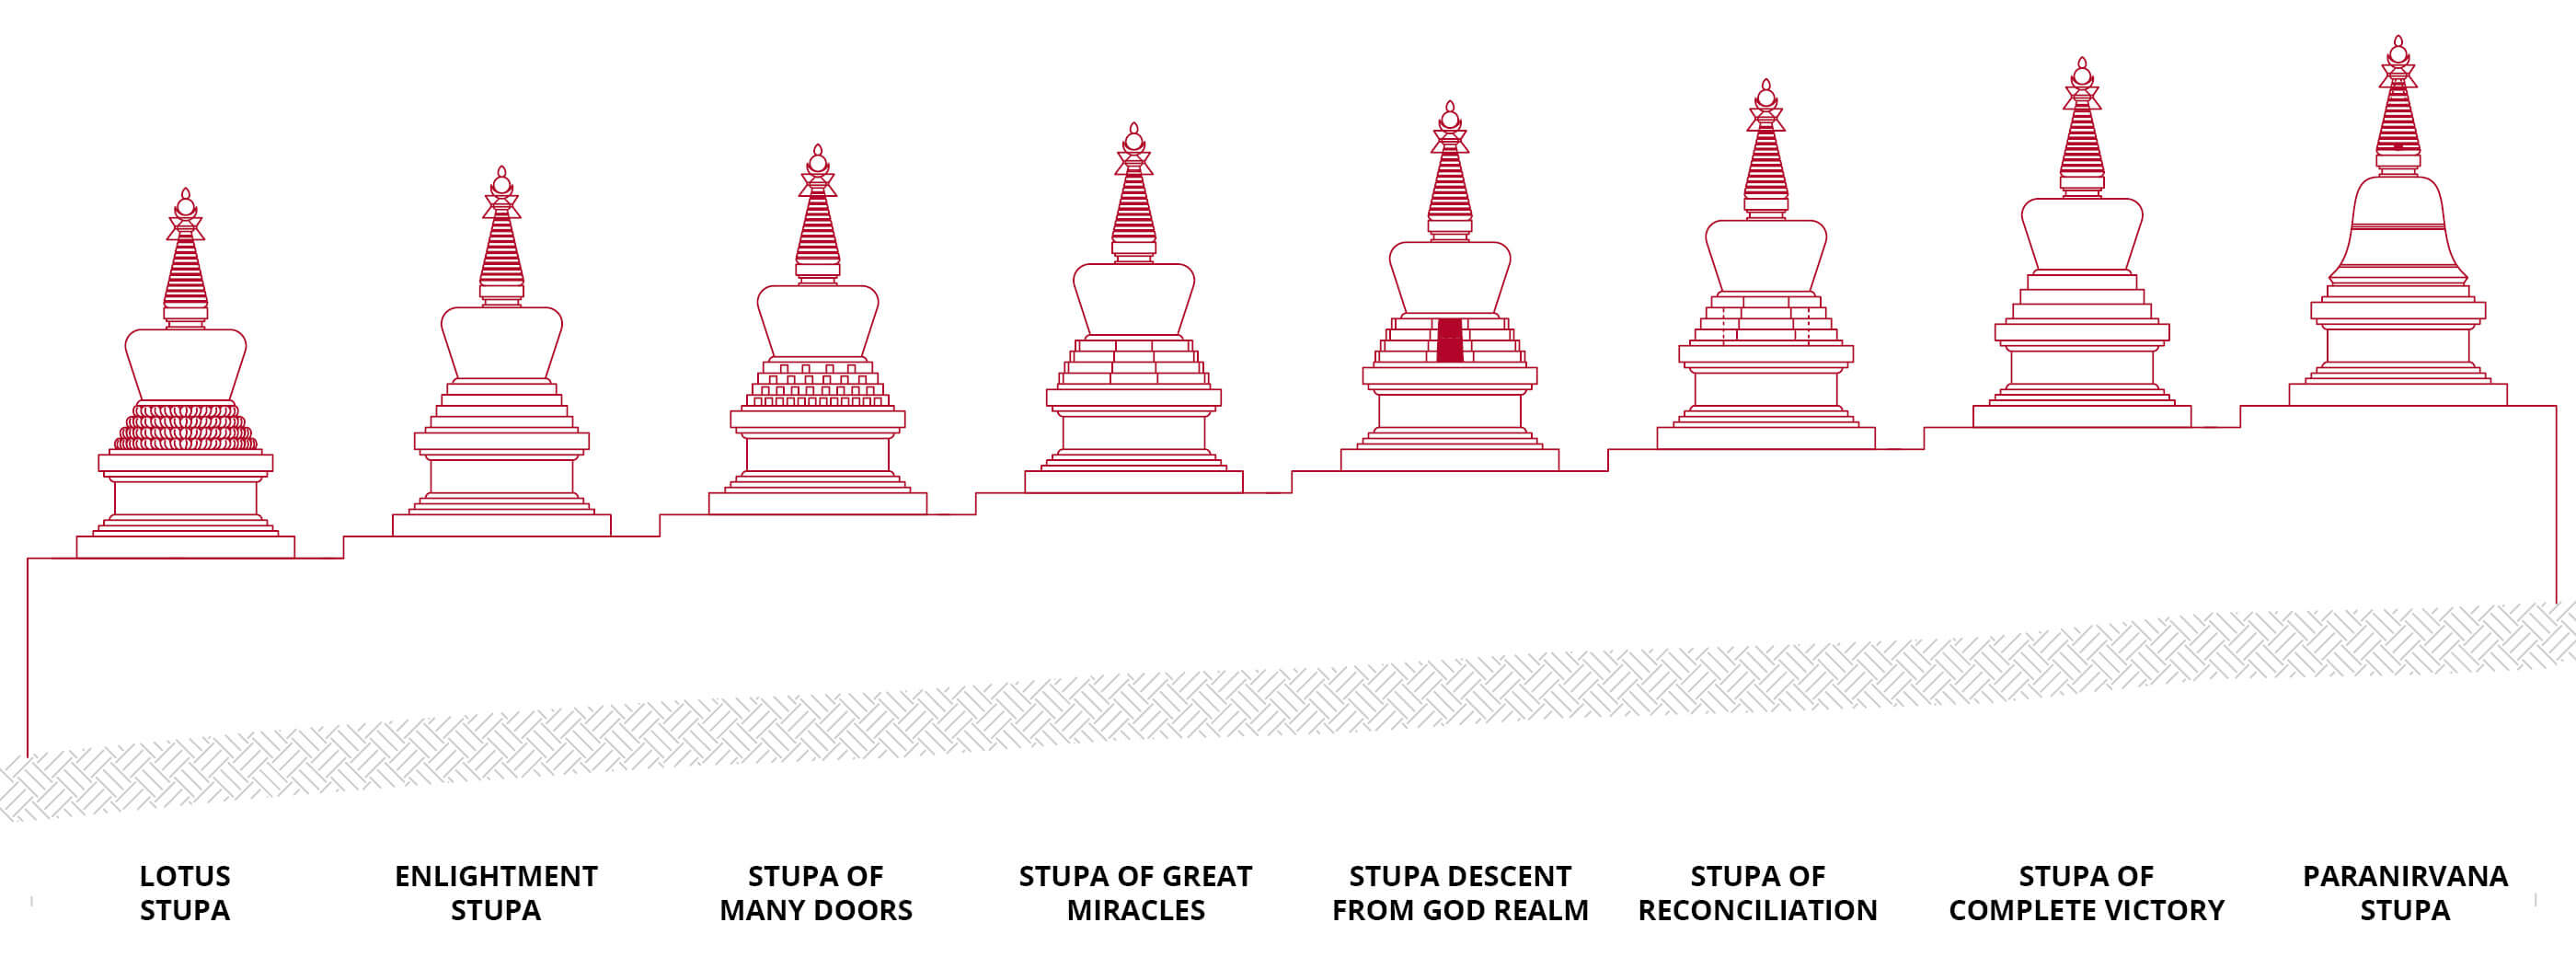 All 8 non-tantric Stupas how they will be build in KBL